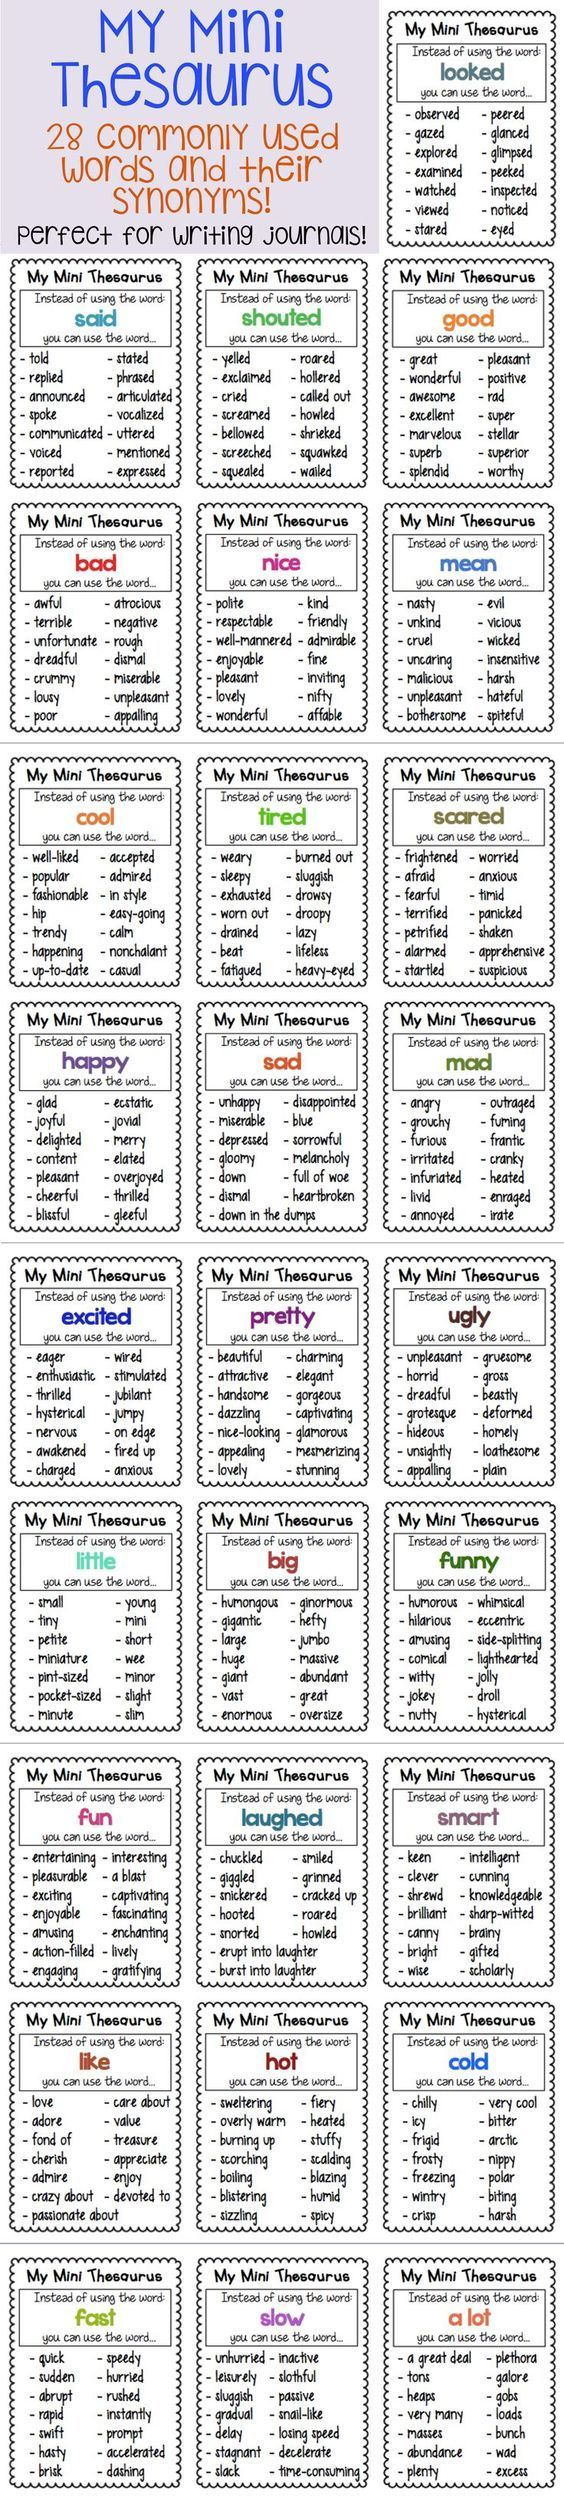 Thesaurus Charts - synonyms for common words | Chart, Journal and Minis